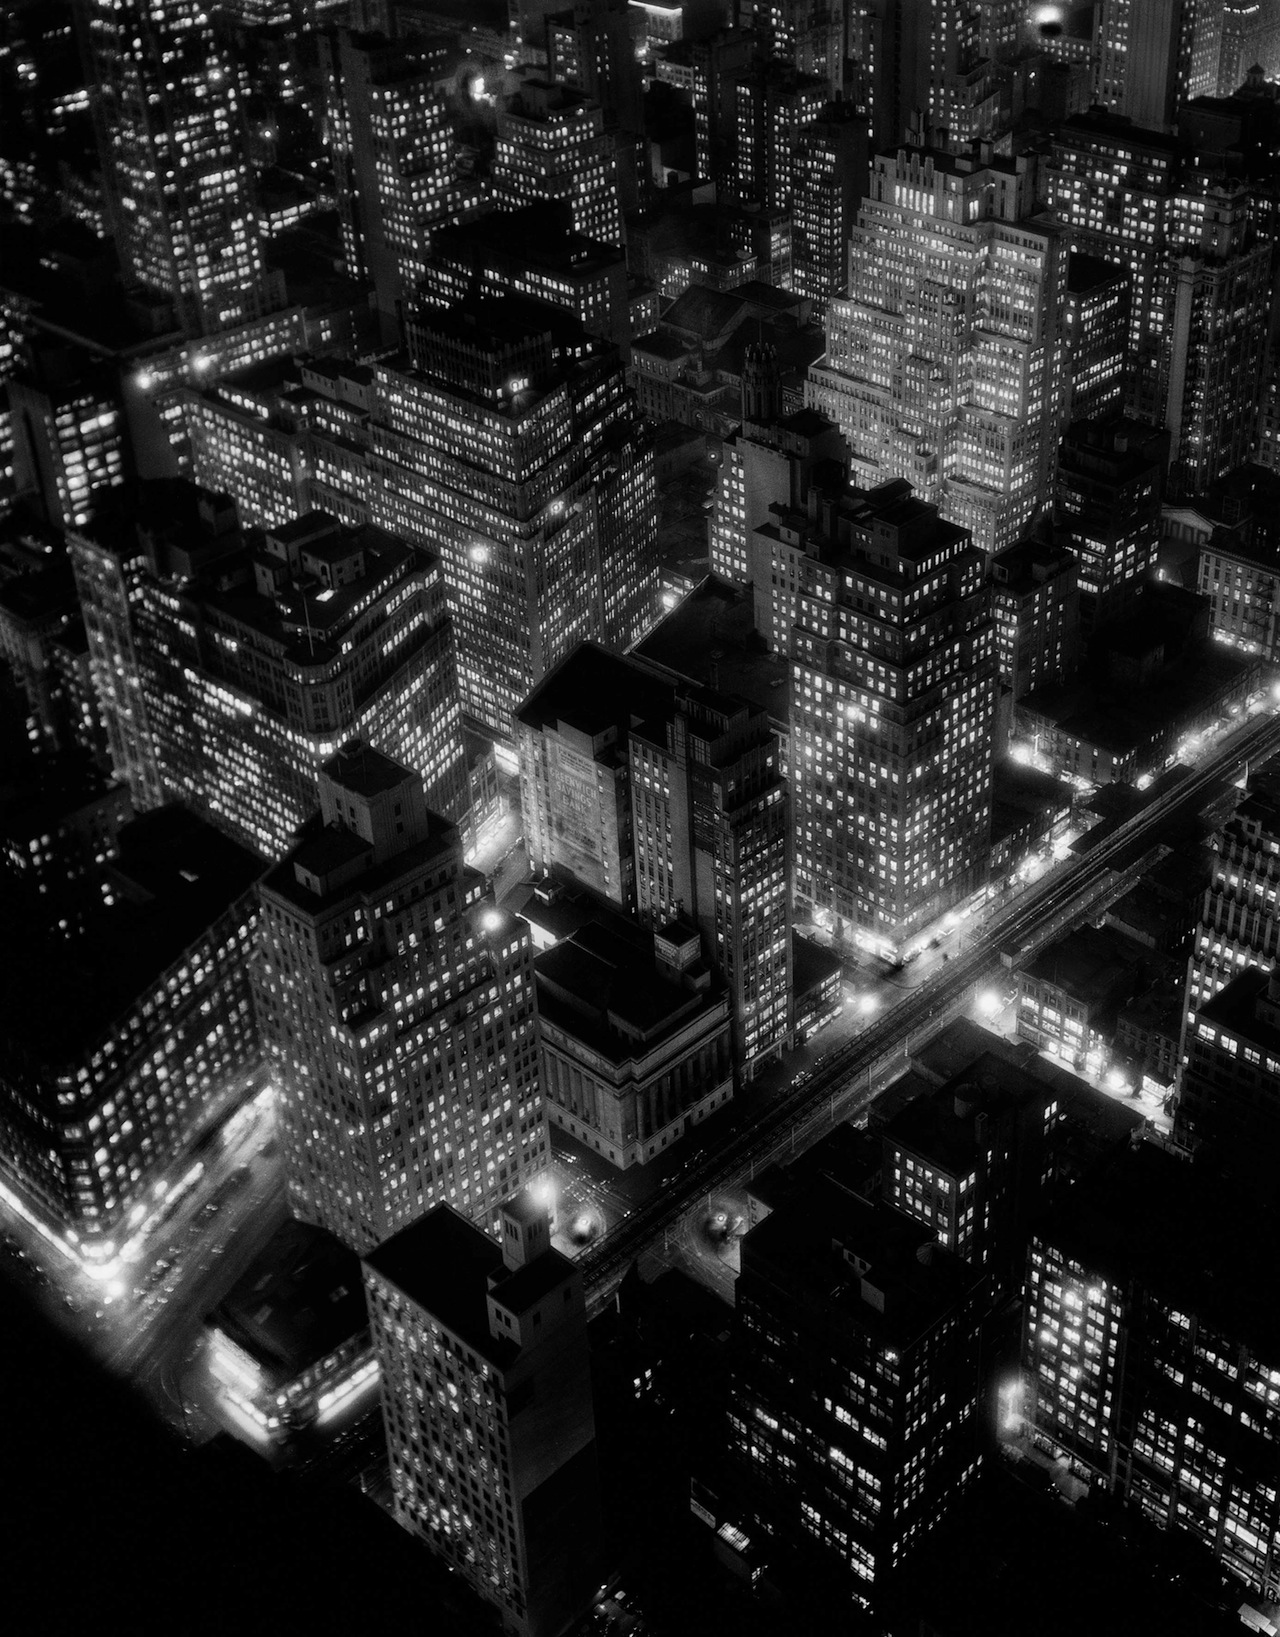 3. Nightview, 1932, 300dpi copy